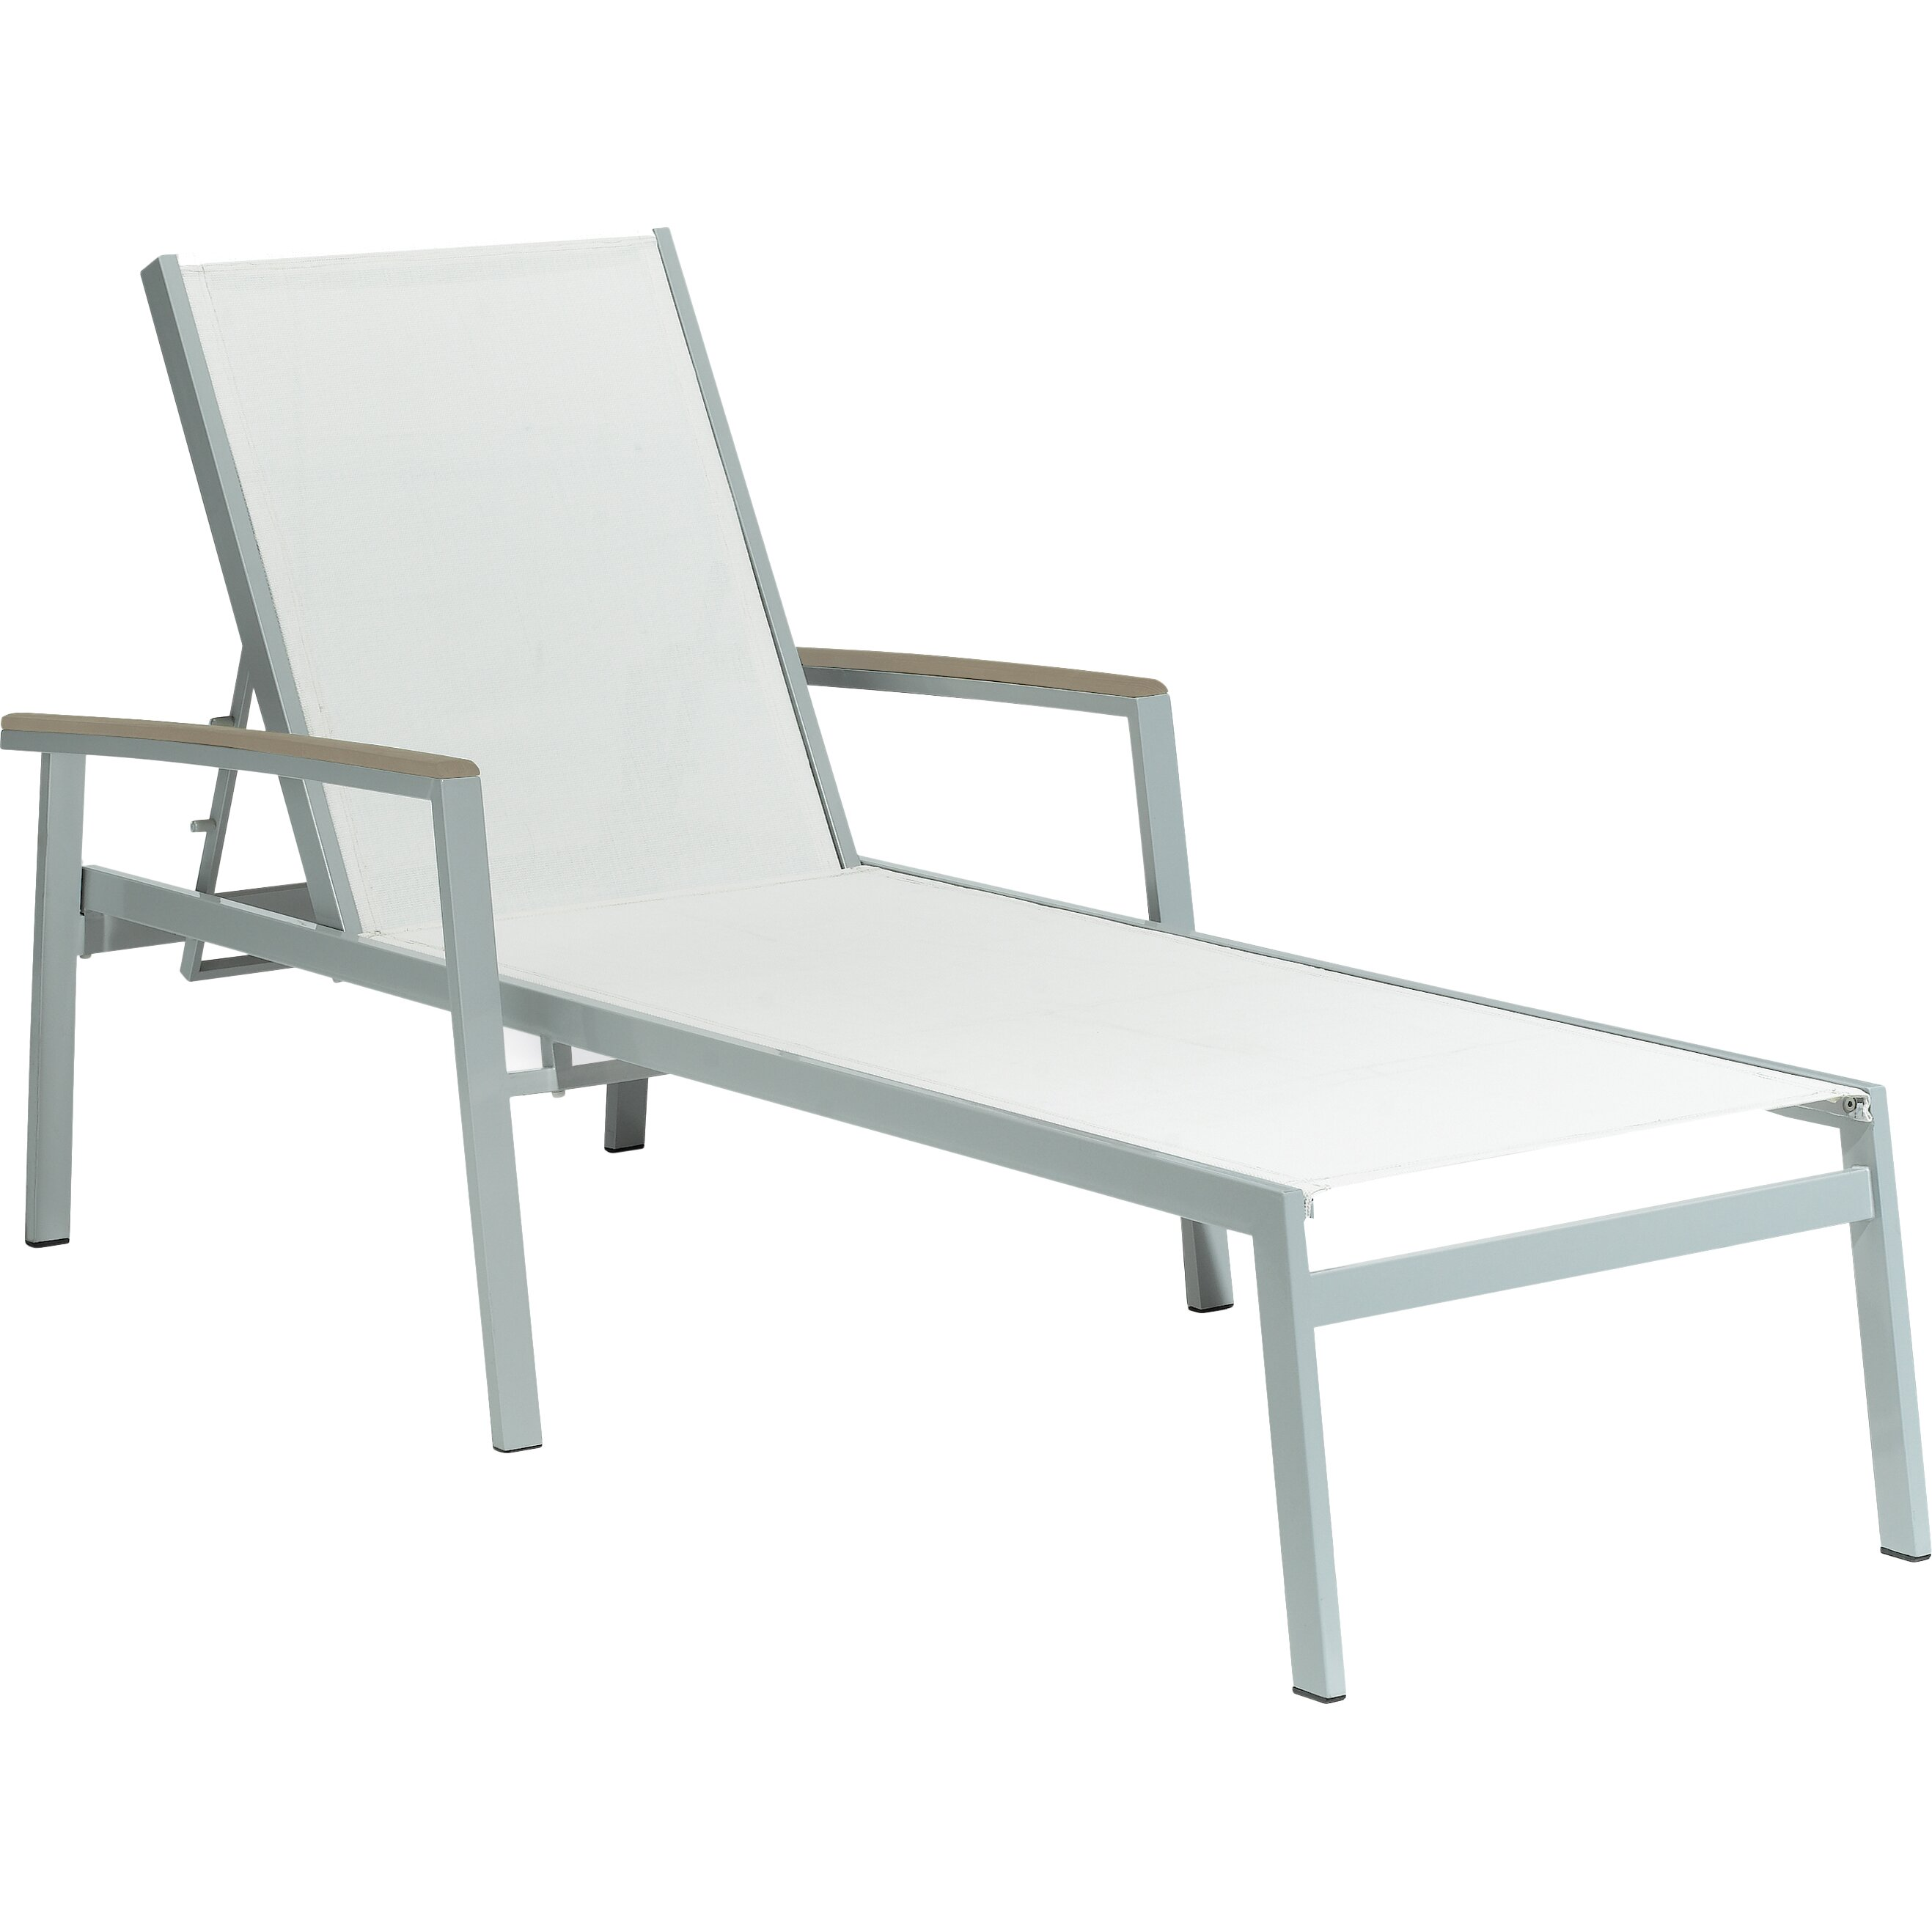 Oxford Garden Travira Chaise Lounge & Reviews